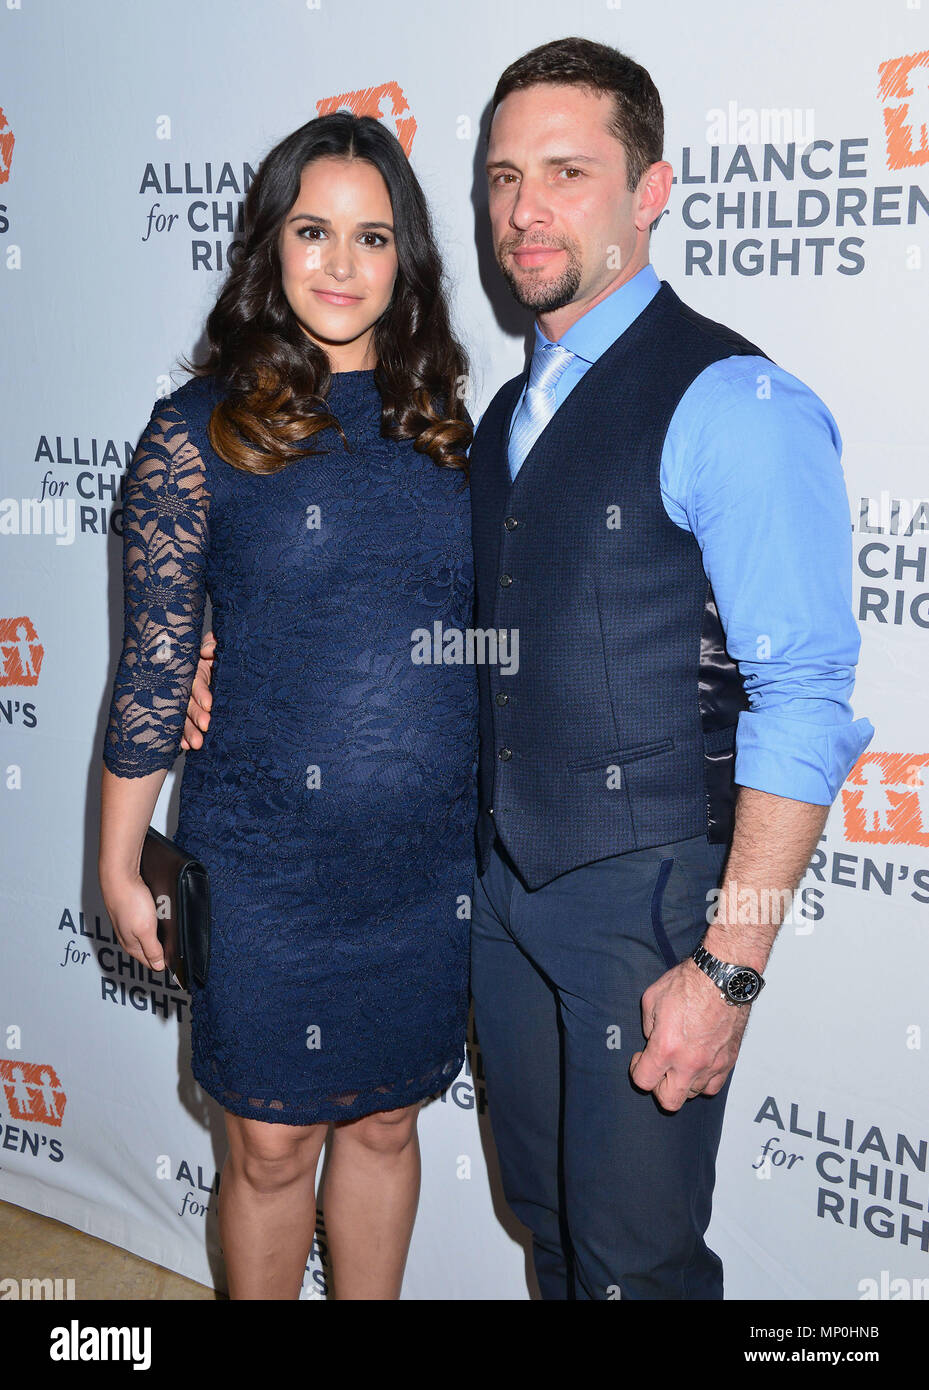 Melissa Fumero, David Fumero 039 arriving The Alliance for ChildrenÕs RightsÕ 24th Annual Dinner at the Beverly Hilton Hotel in Los Angeles. March 10, 2016.Melissa Fumero, David Fumero 039 ------------- Red Carpet Event, Vertical, USA, Film Industry, Celebrities,  Photography, Bestof, Arts Culture and Entertainment, Topix Celebrities fashion /  Vertical, Best of, Event in Hollywood Life - California,  Red Carpet and backstage, USA, Film Industry, Celebrities,  movie celebrities, TV celebrities, Music celebrities, Photography, Bestof, Arts Culture and Entertainment,  Topix, vertical,  family fr - Stock Image